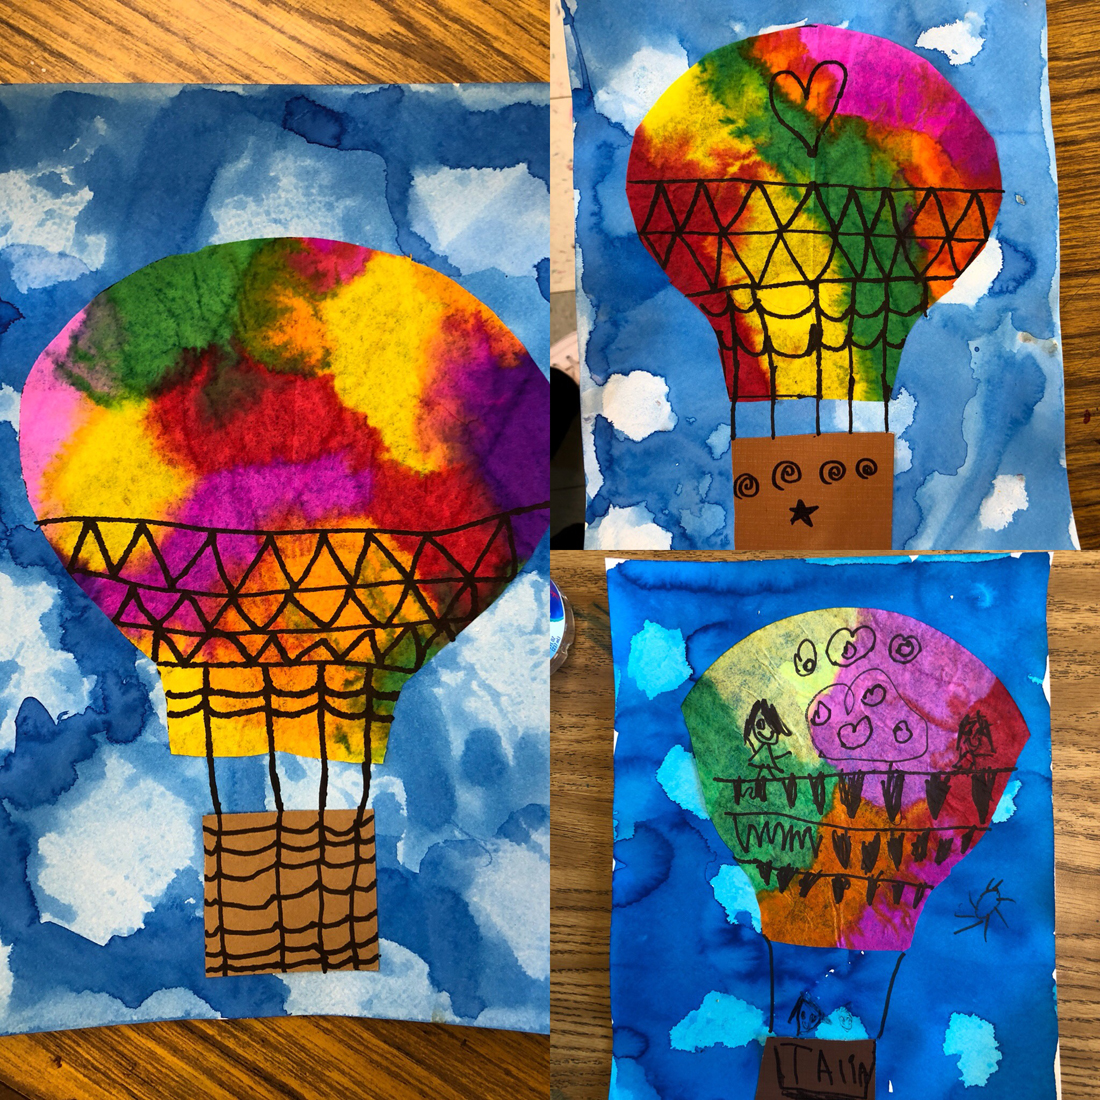 Coffee filter art with hot air balloons art projects for kids